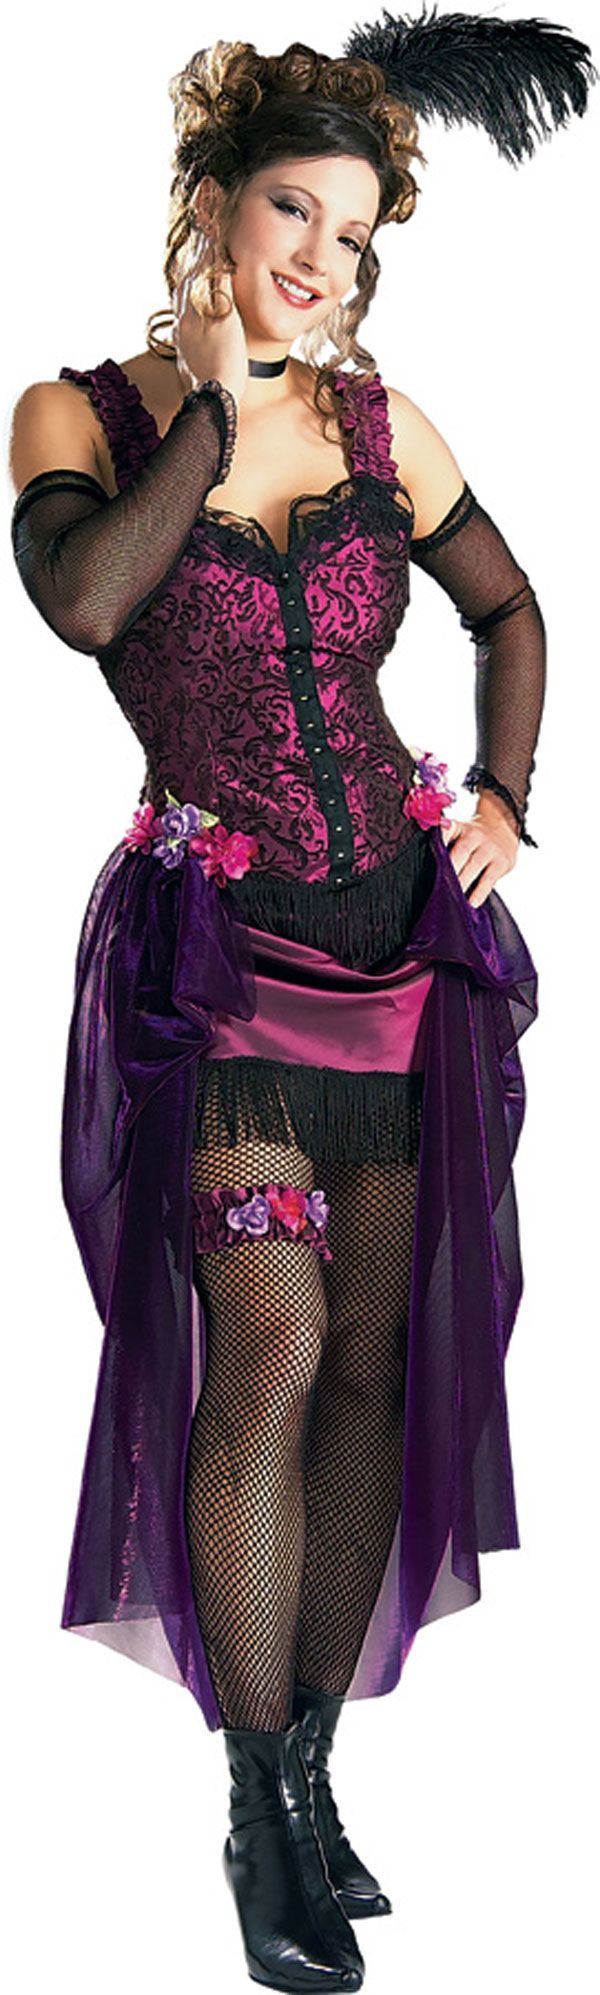 Old Time Saloon Girls | LONG ISLAND COSTUME- OLD WEST